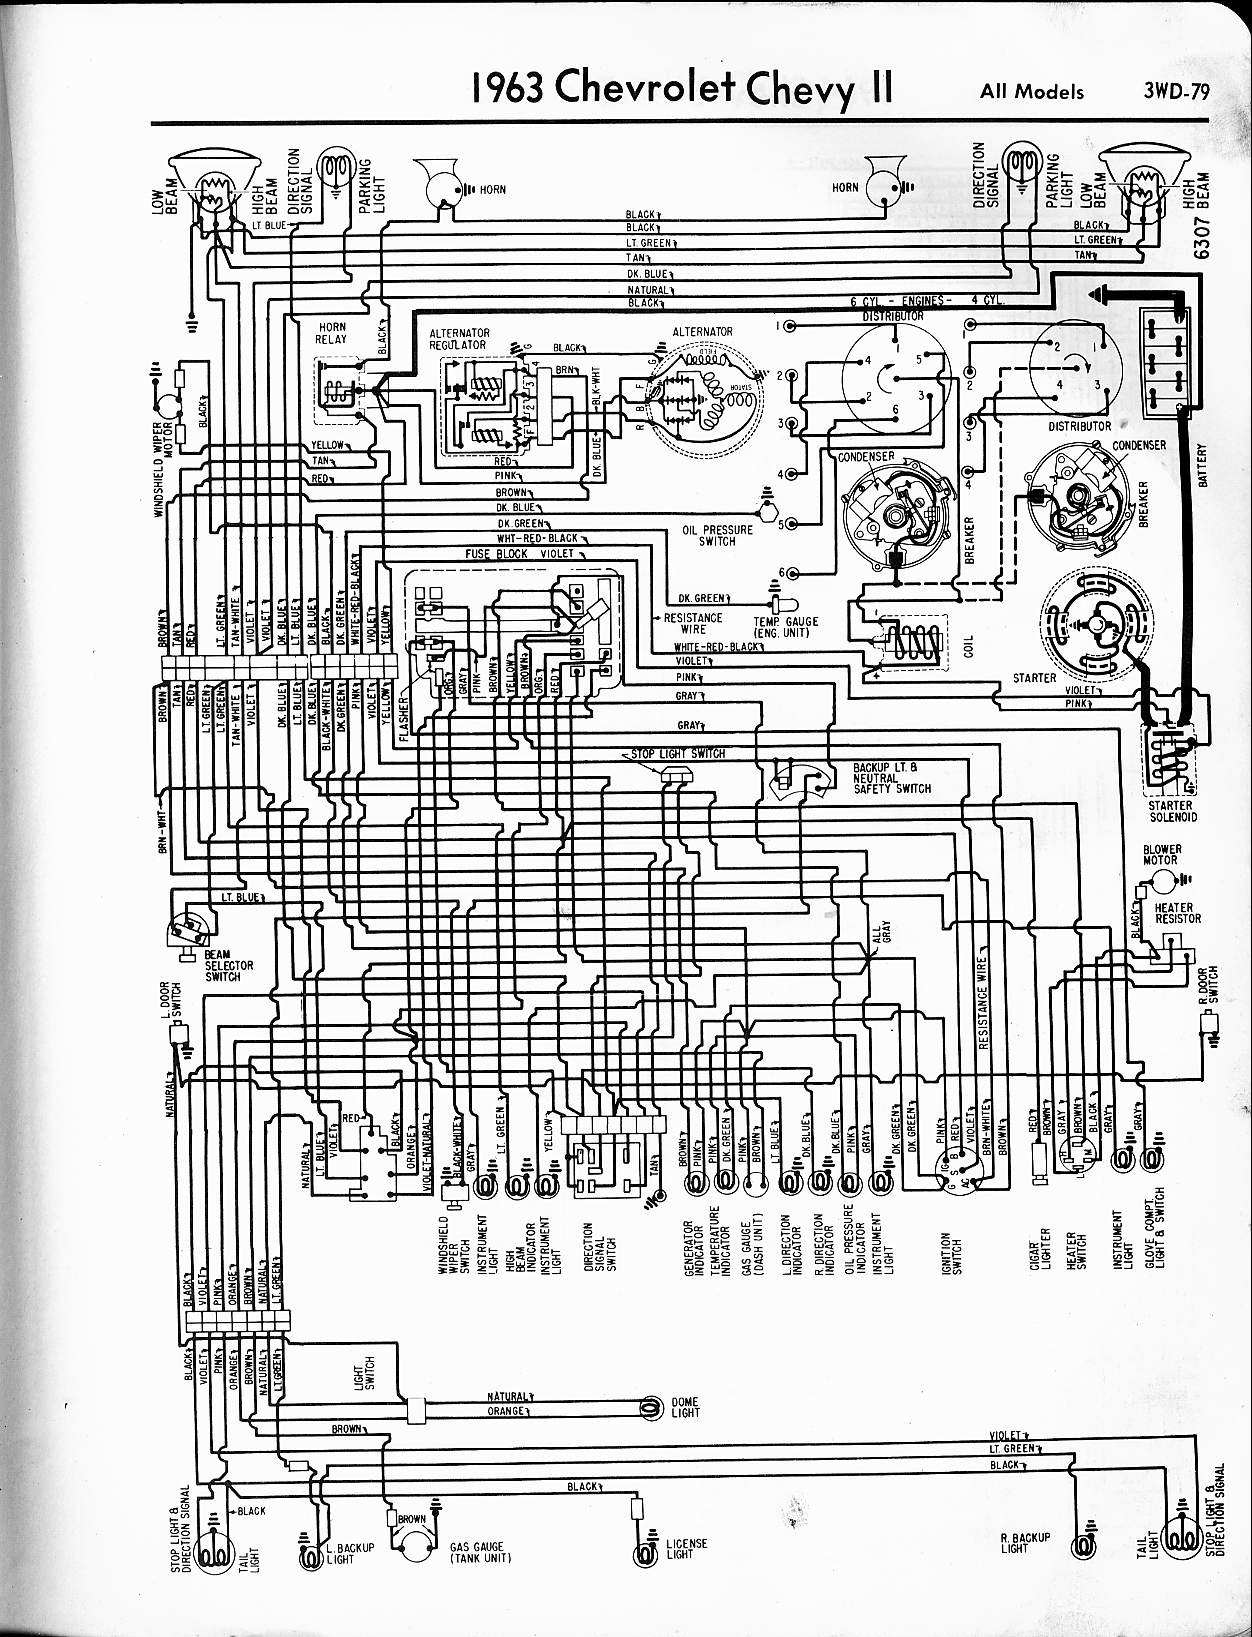 MWireChev63_3WD 079 1963 impala wiring diagram 1957 chevy bel air wiring diagram 2000 GMC Truck Electrical Wiring Diagrams at crackthecode.co